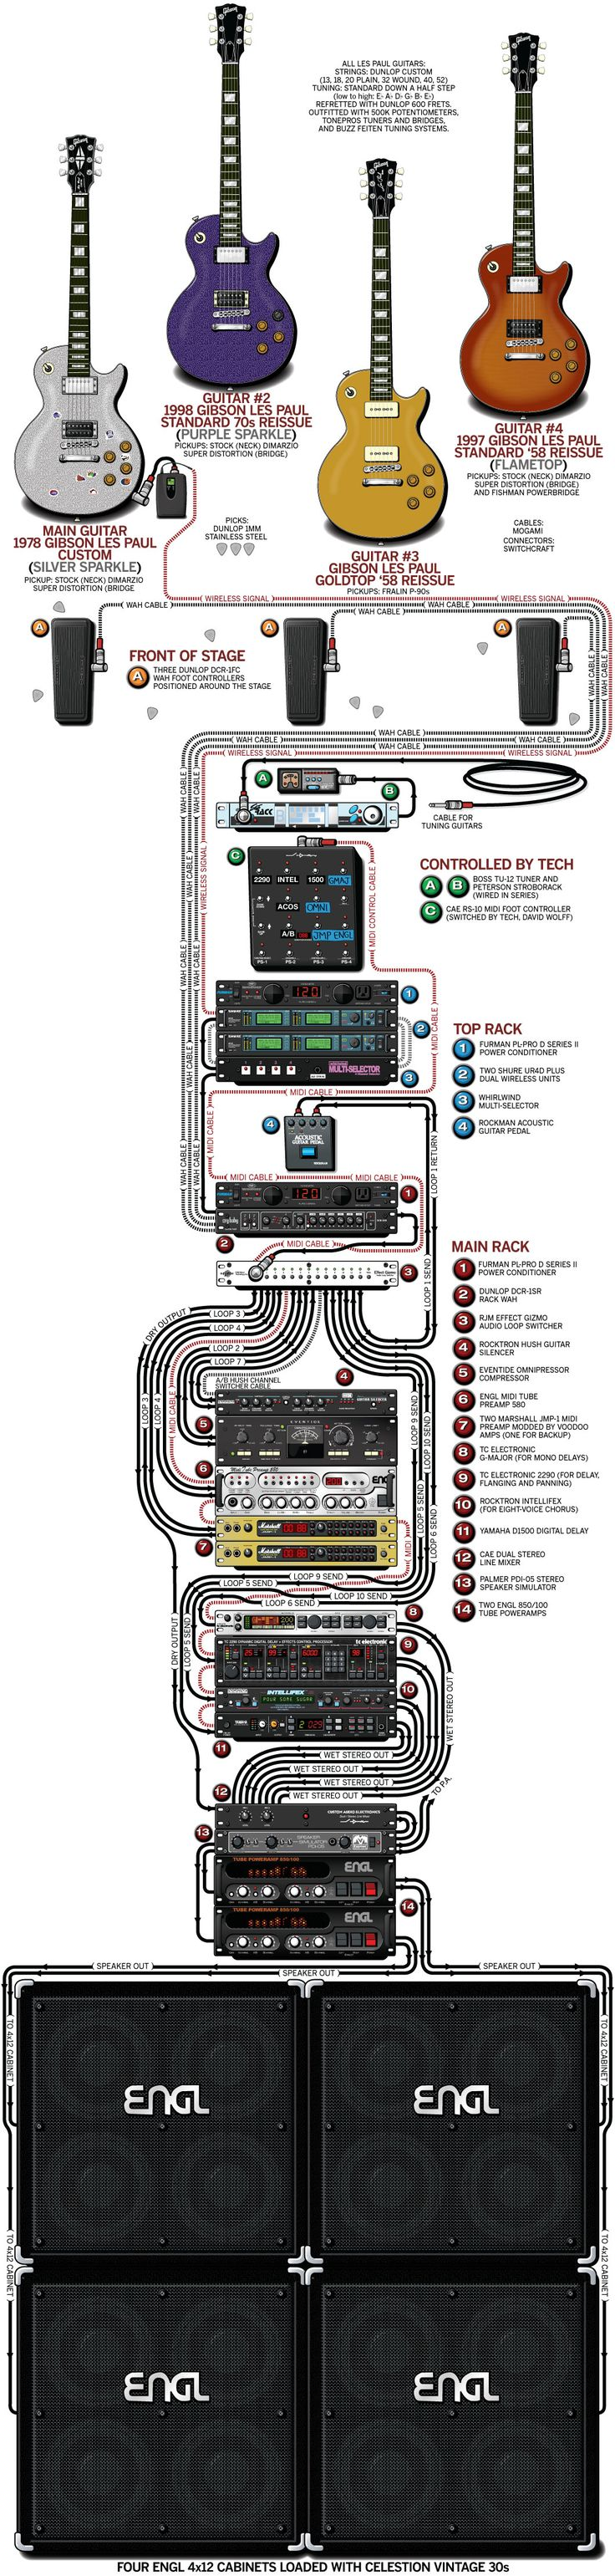 31 Best Guitars Images On Pinterest Bass Diagram Furthermore Lap Steel Guitar Together With Electric Vivian Campbells Live Rig Def Leppard Featured In World Magazine Contains Voodoo Amps Platinum Modded Preamps